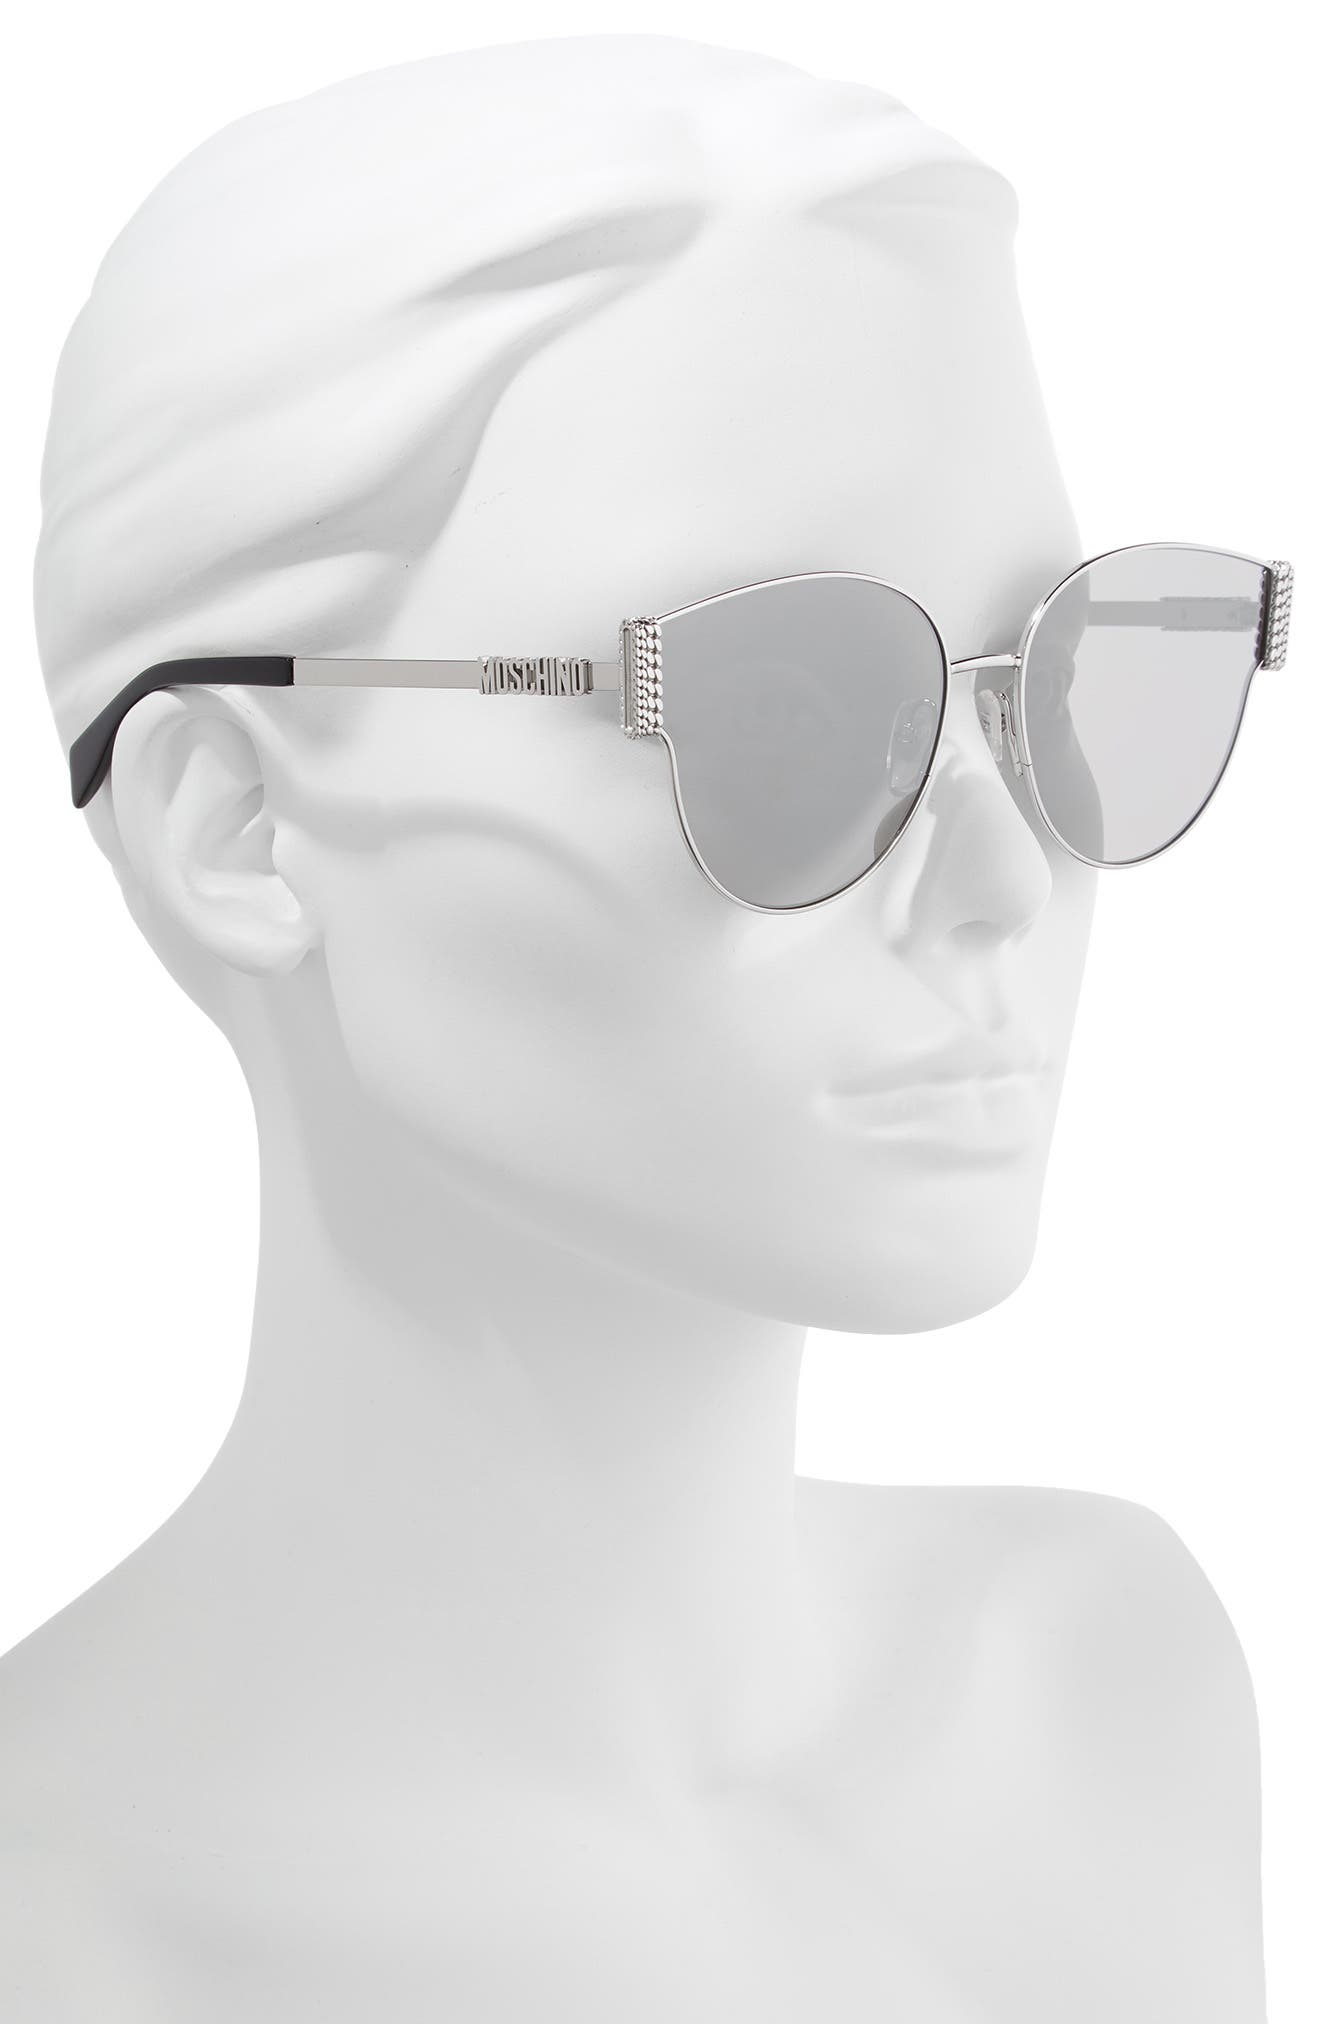 MOSCHINO, 61mm Special Fit Cat Eye Sunglasses, Alternate thumbnail 2, color, SILVER/ BLACK